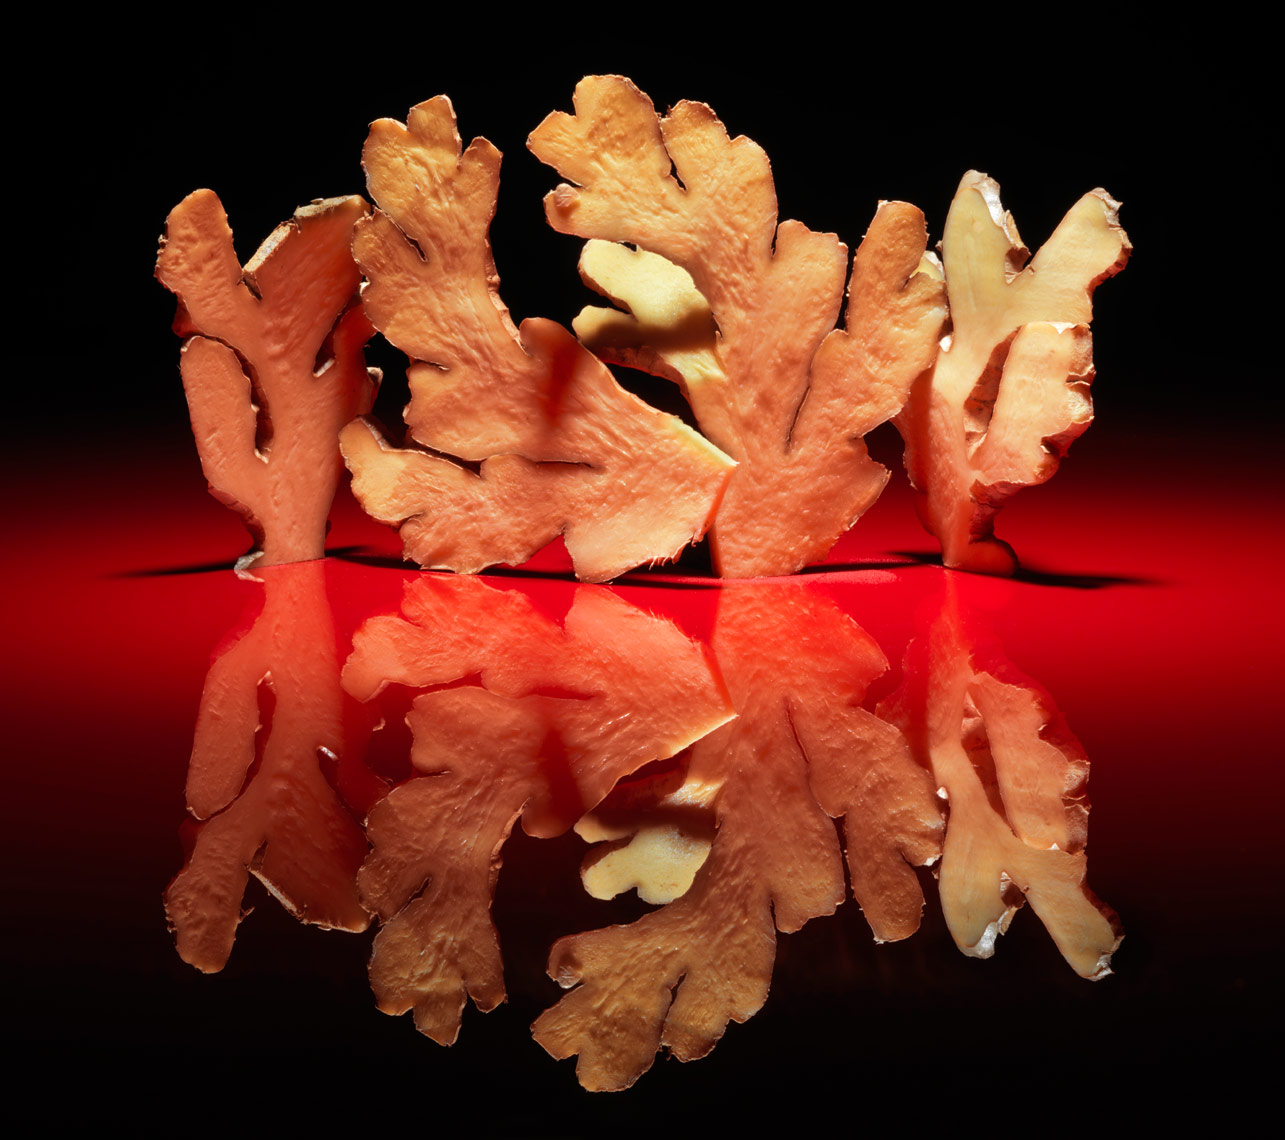 fresh organic ginger sculpture on a red background